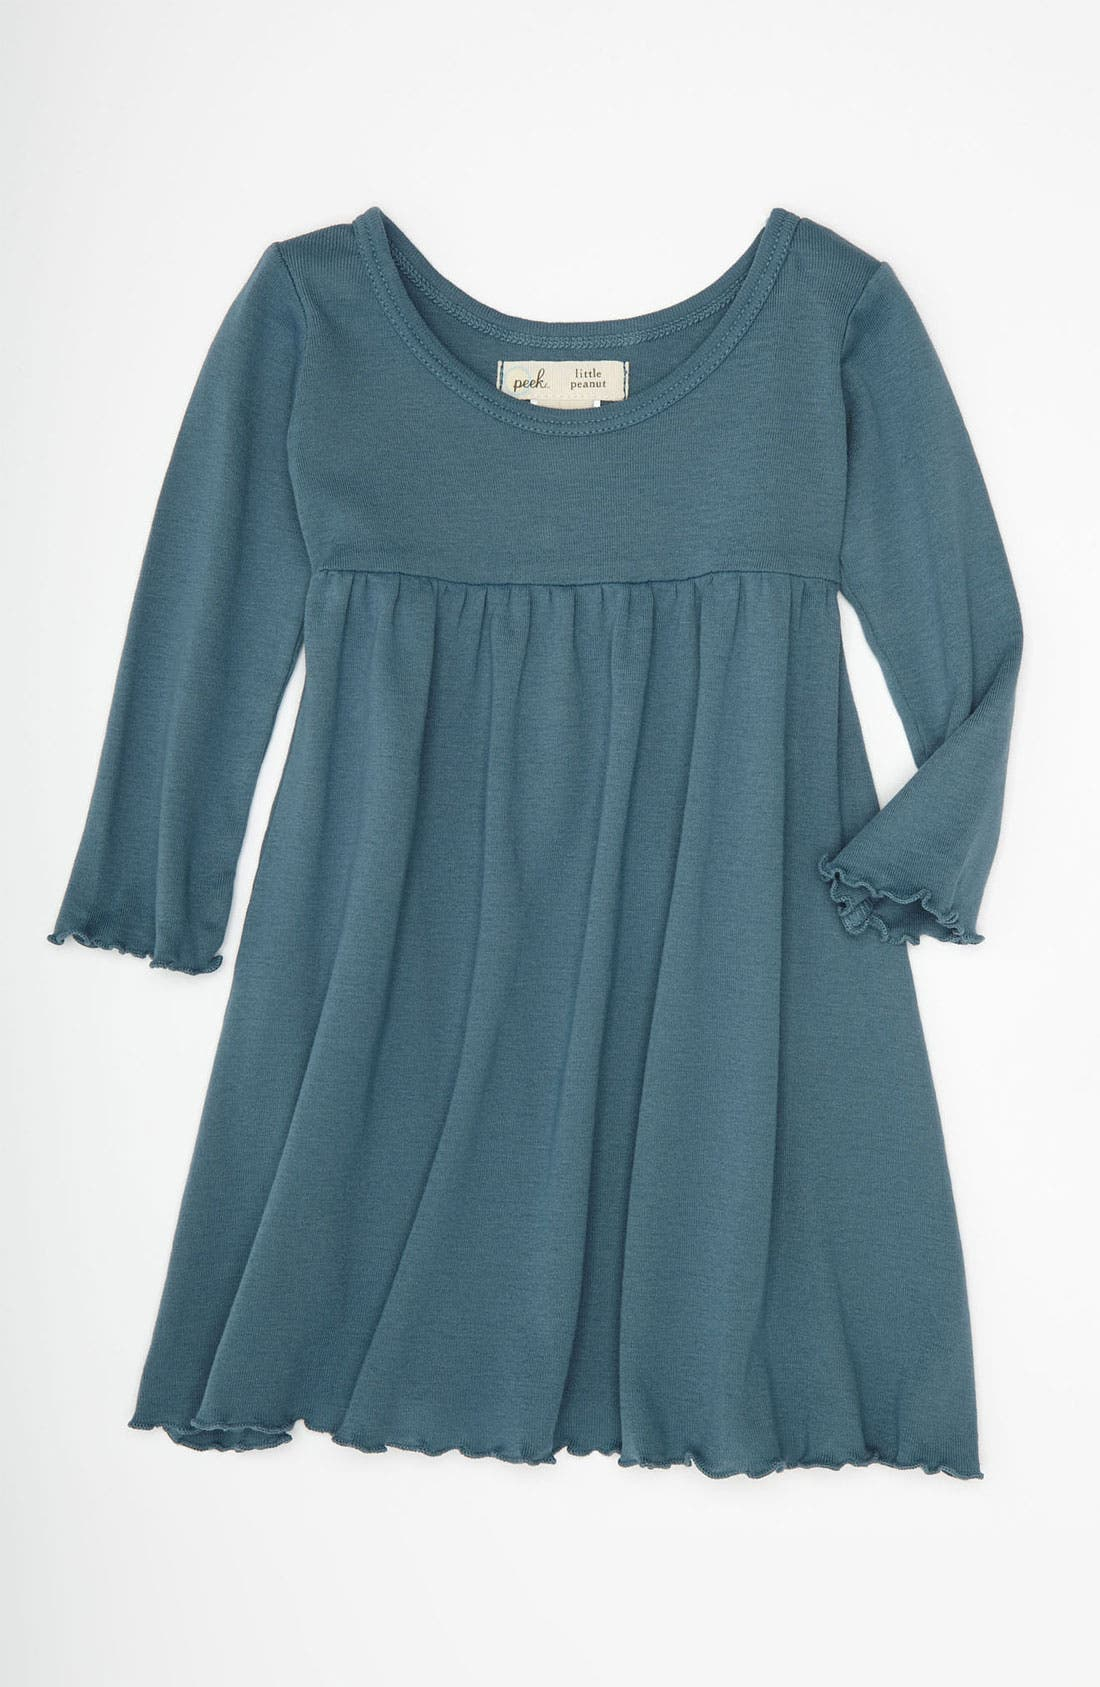 Alternate Image 1 Selected - Peek 'Little Peanut' Long Sleeve Dress (Baby)